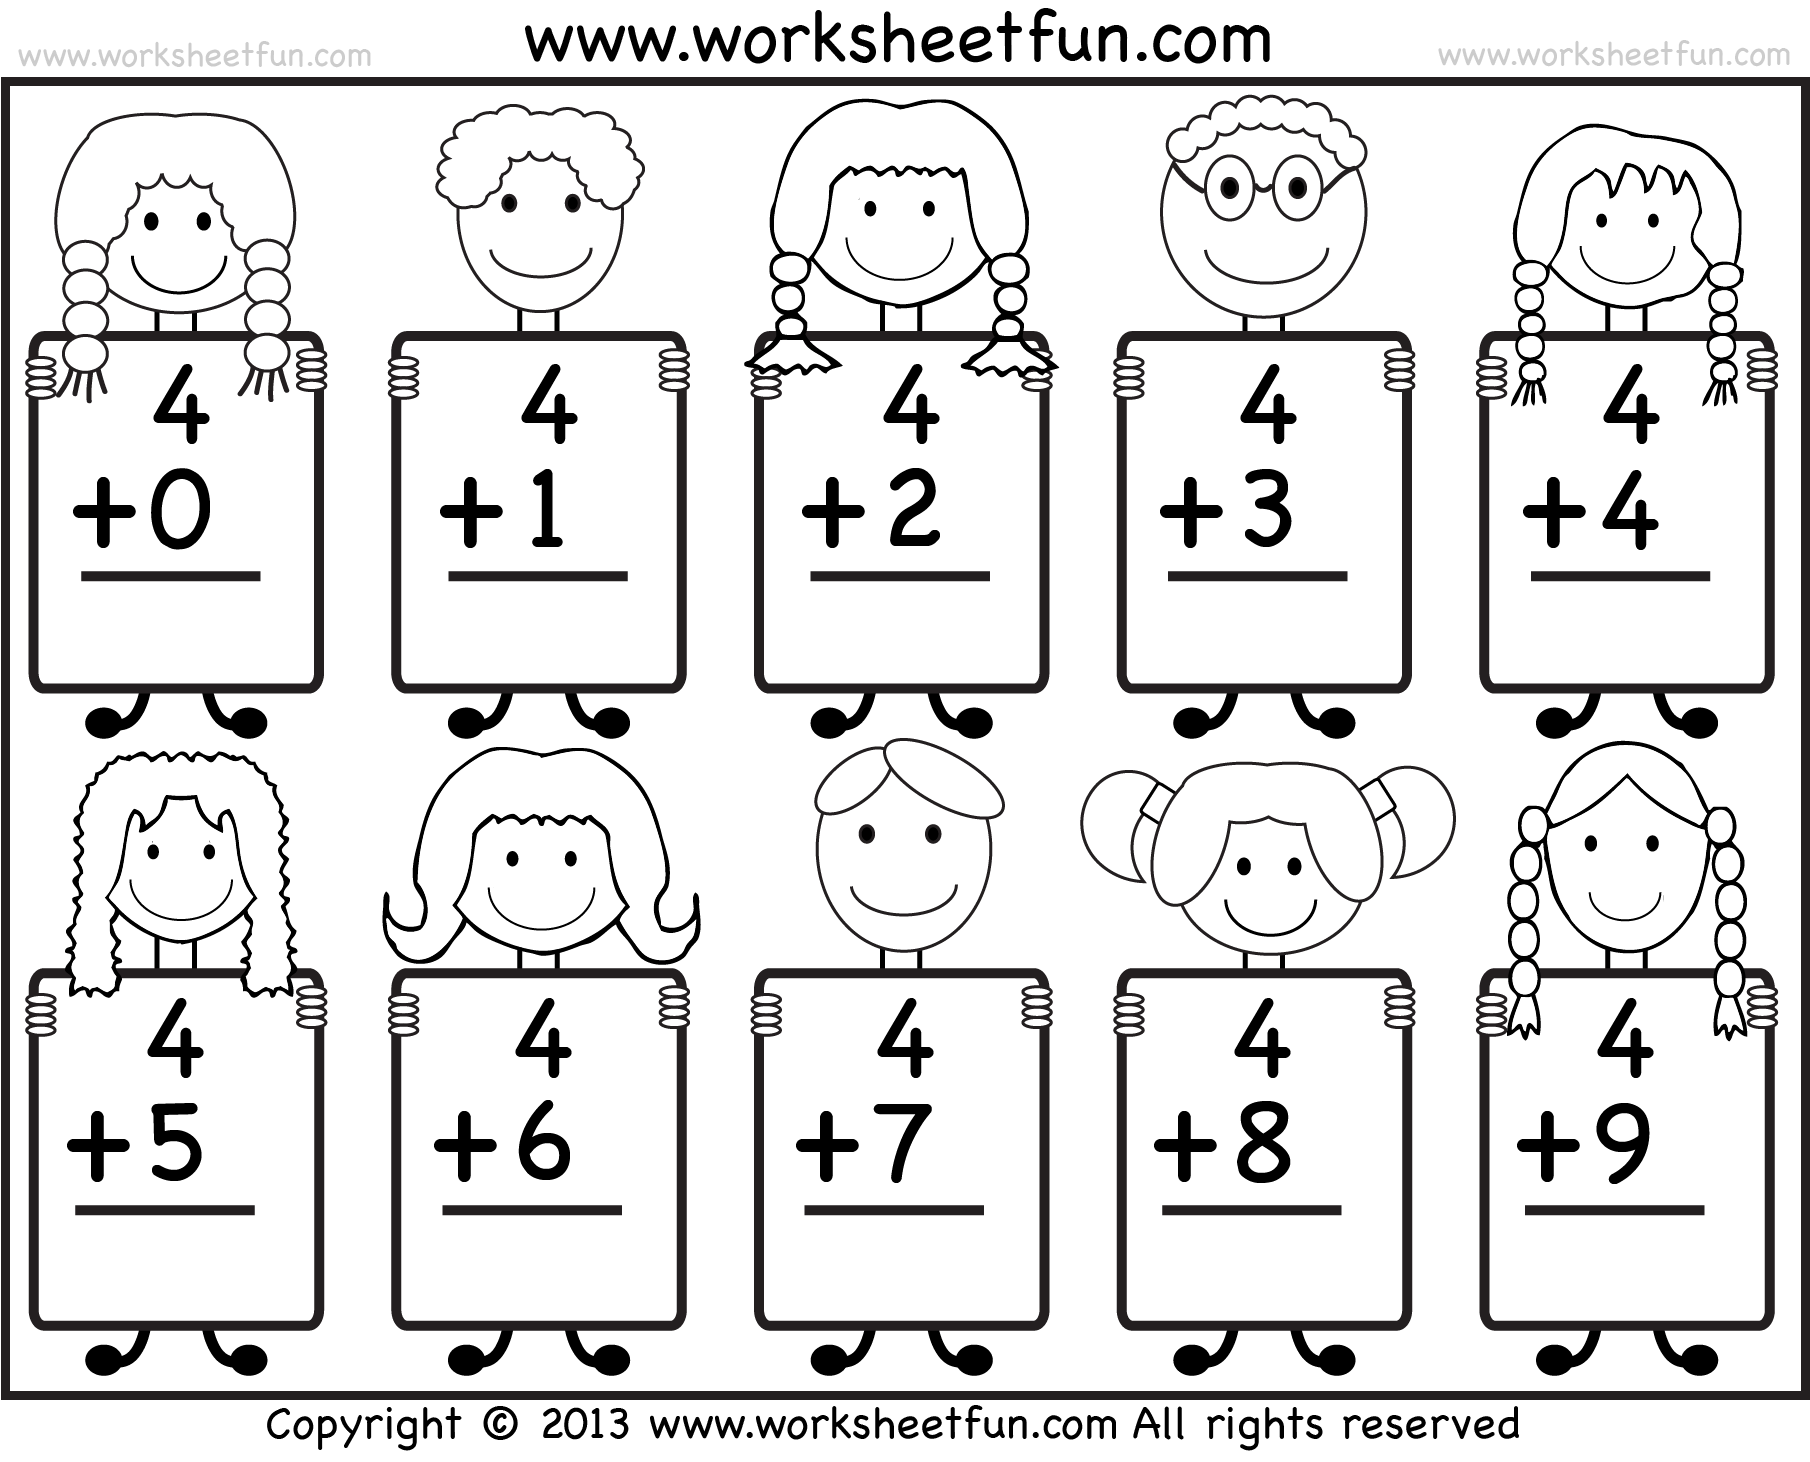 math worksheet : kindergarten maths worksheets to print  k5 worksheets : Printable Kindergarten Addition Worksheets